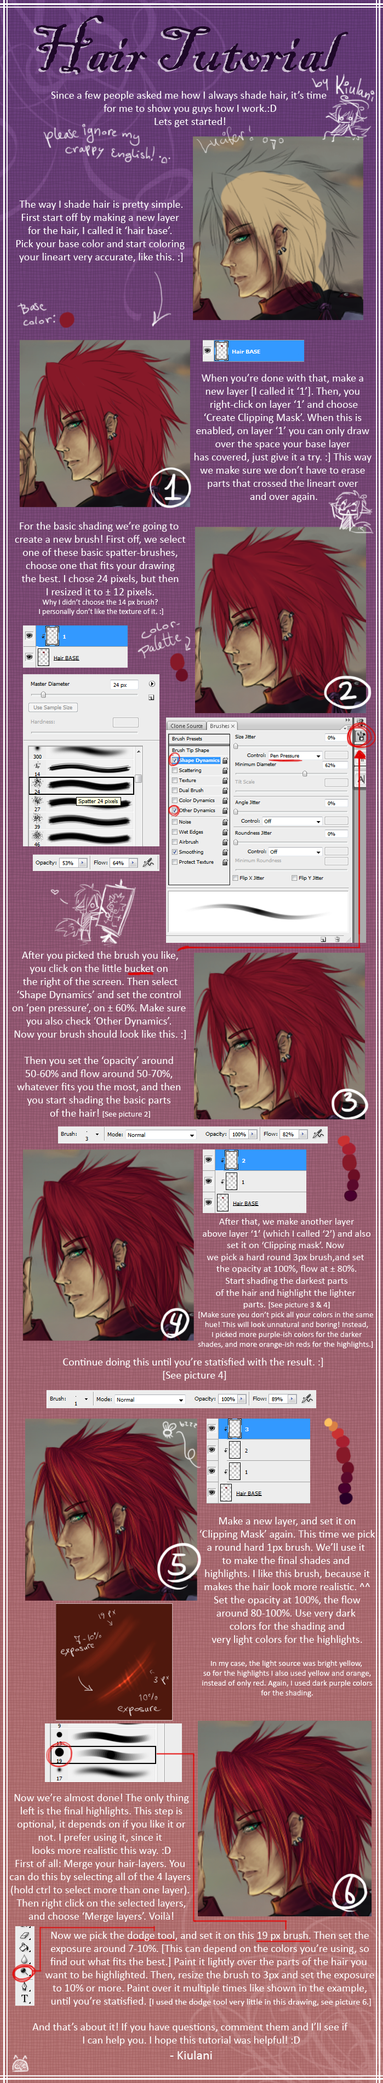 photoshop painting tutorial deviantart